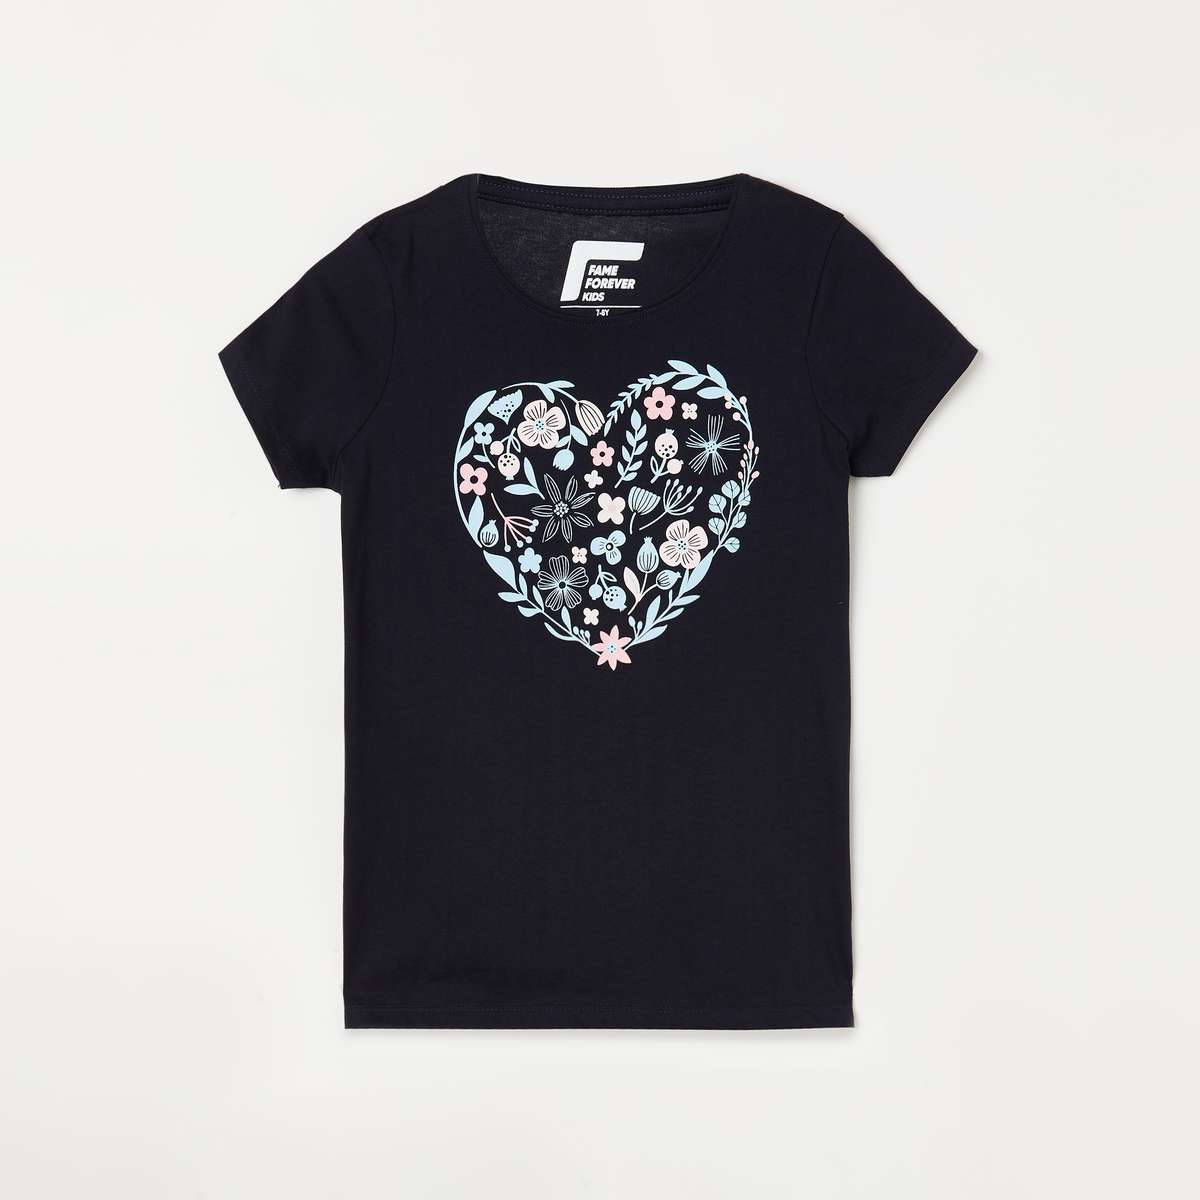 3.FAME FOREVER YOUNG Girls Printed Round Neck T-shirt